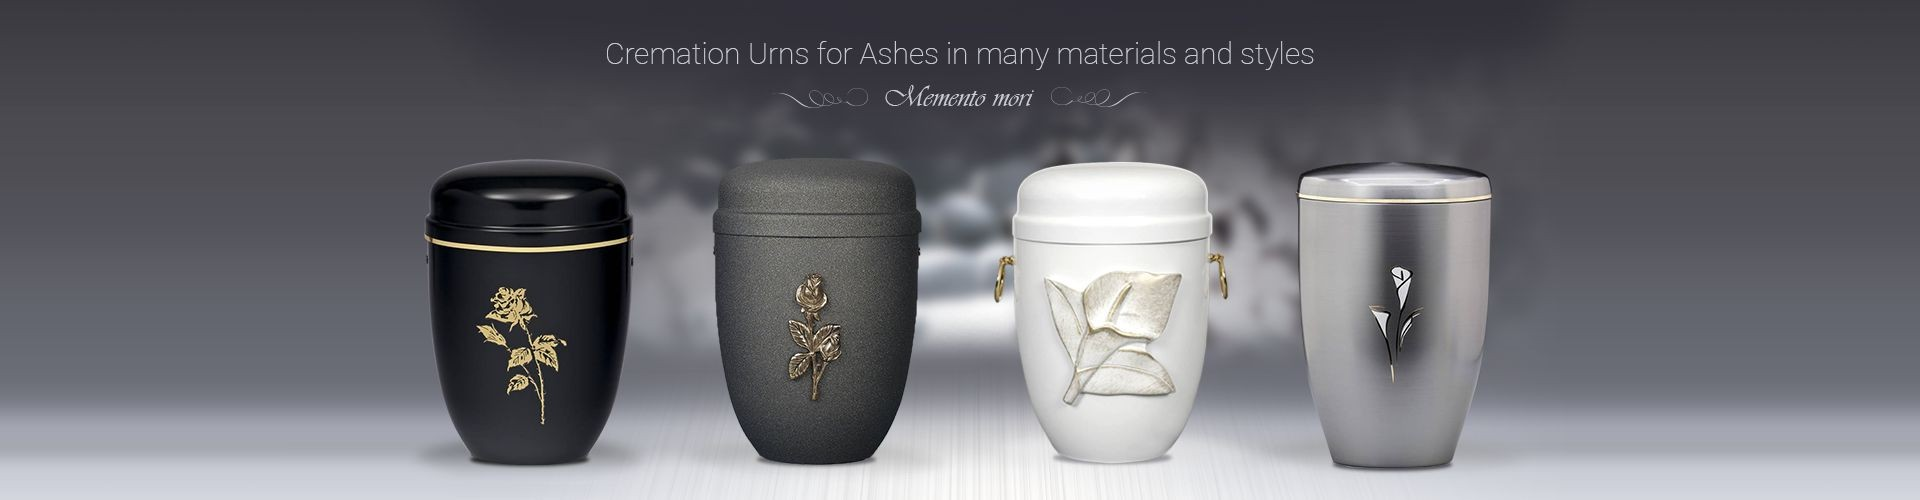 Cremation Urns for Ashes in many materials and styles